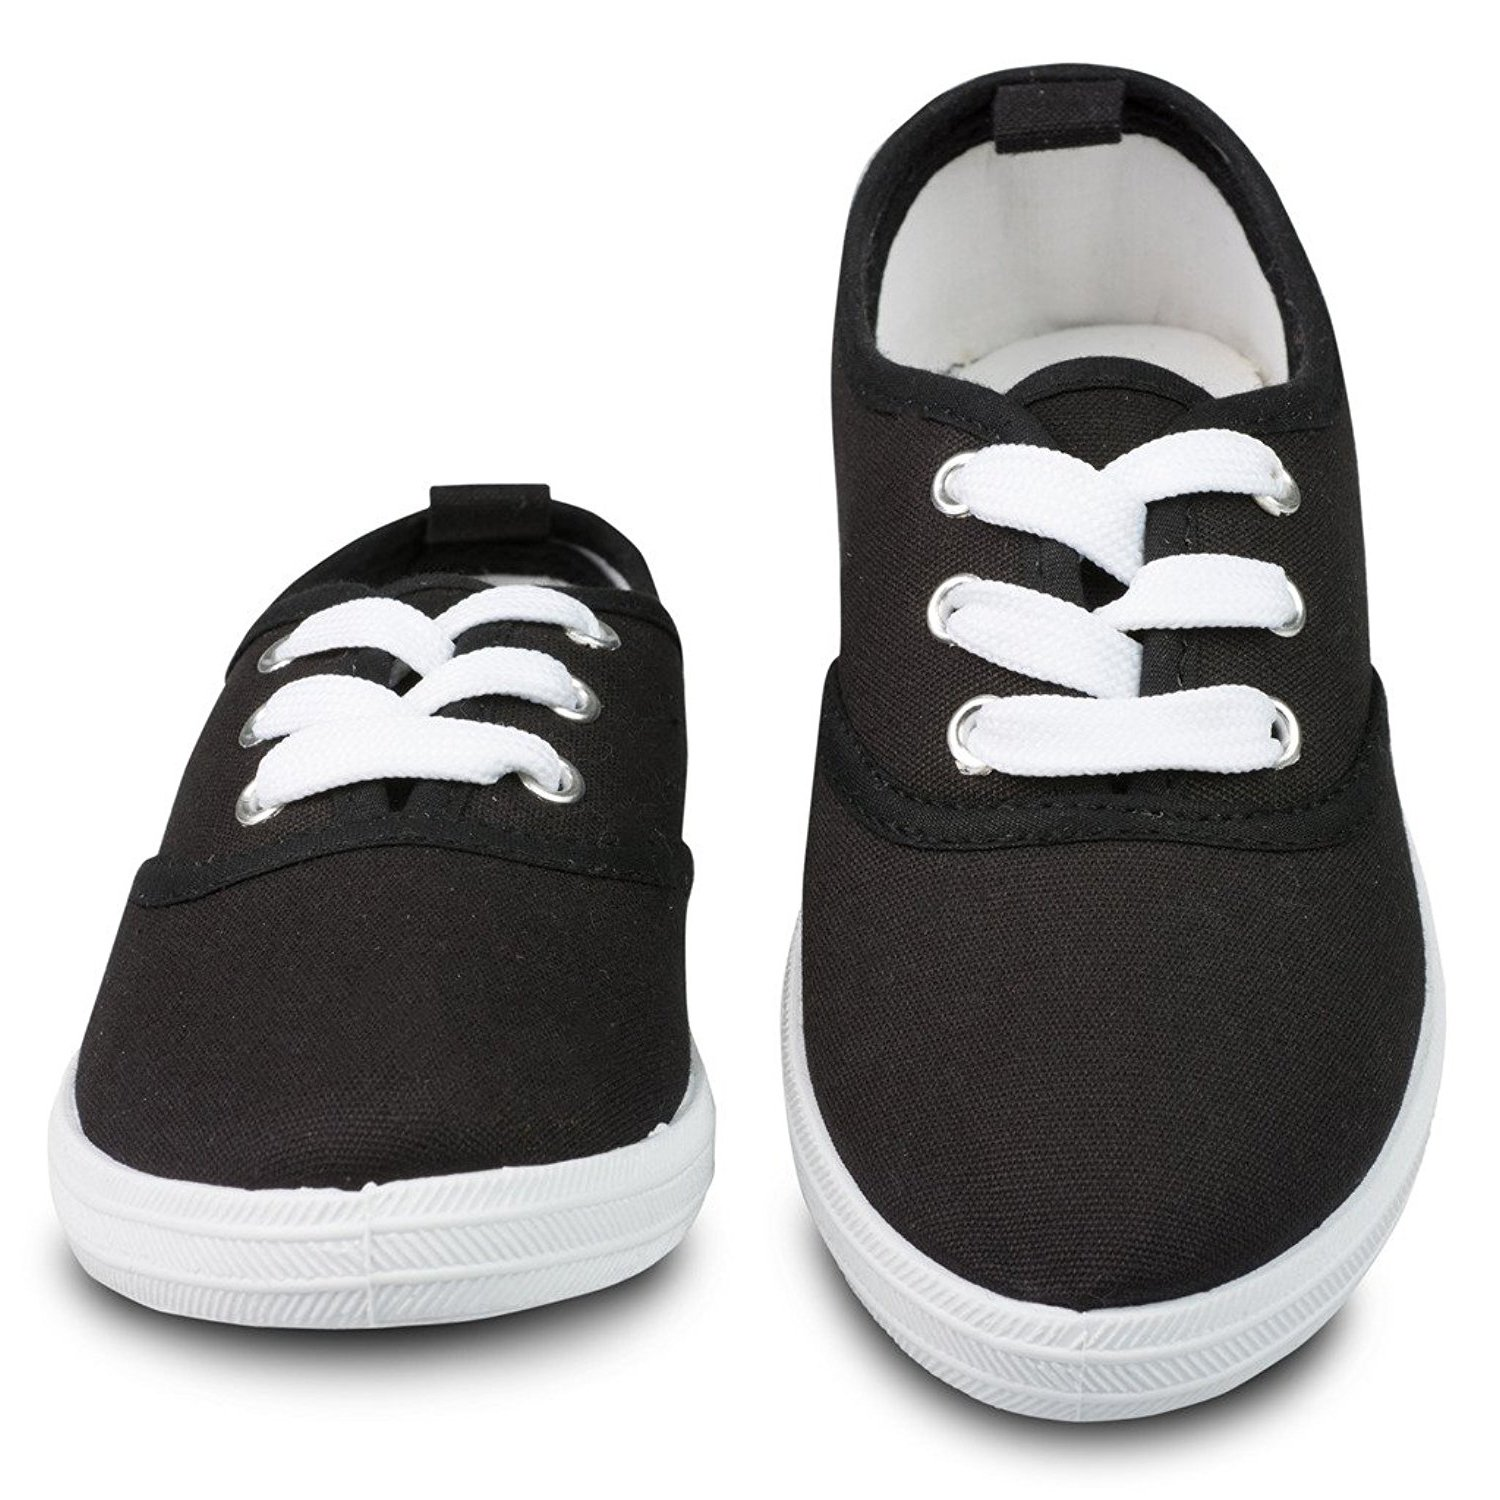 Kids Sneakers Tie up Slip on Canvas Laces Children Girls Boys Youth Causal Comfortable Cap Toe Shoes Kids Toddlers 2.0 8 Toddlers, Black and White Classic Canvas